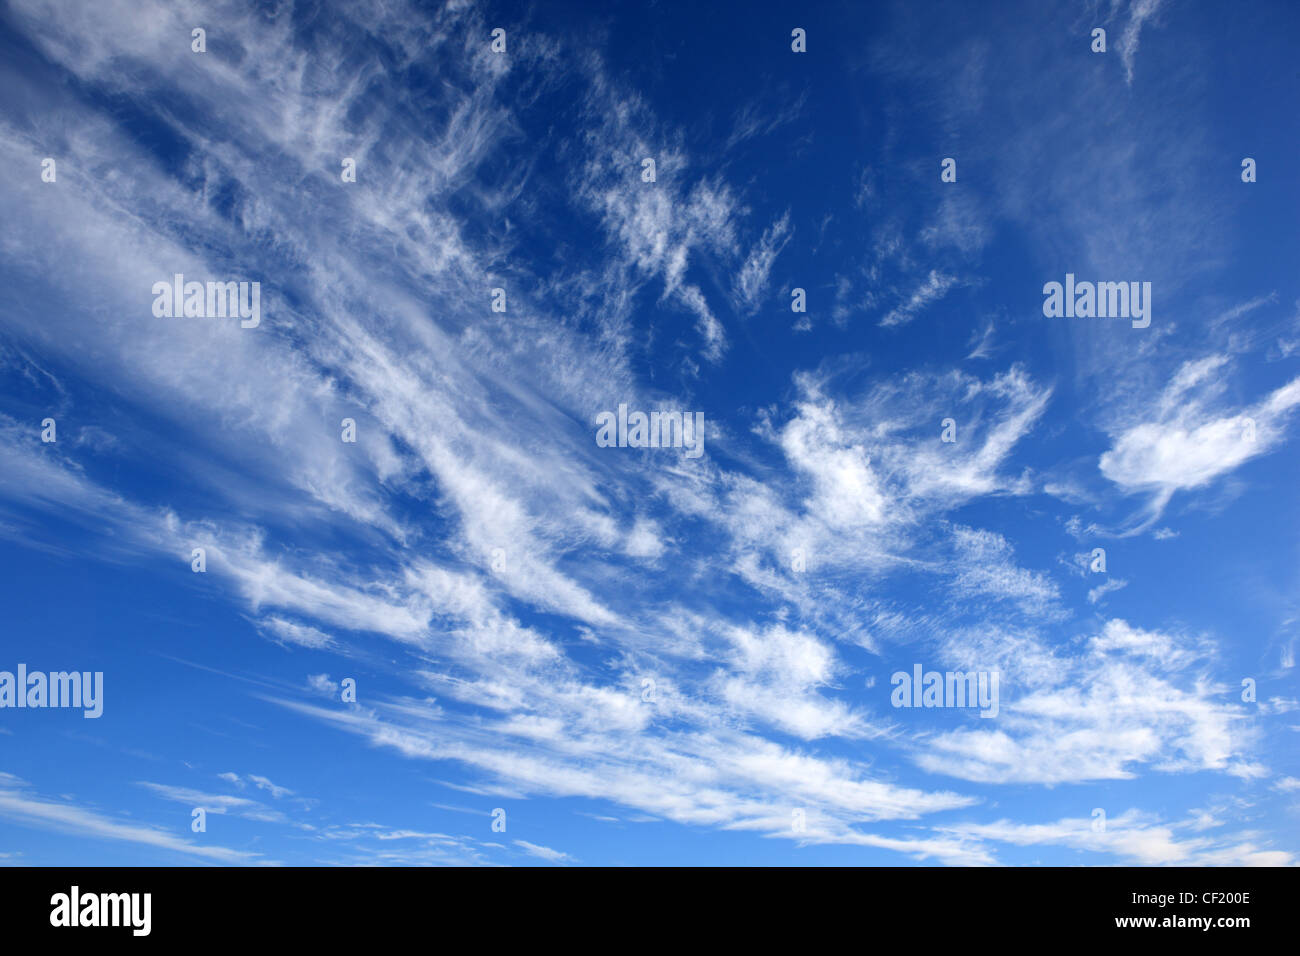 White wispy clouds in a blue summer sky - Stock Image